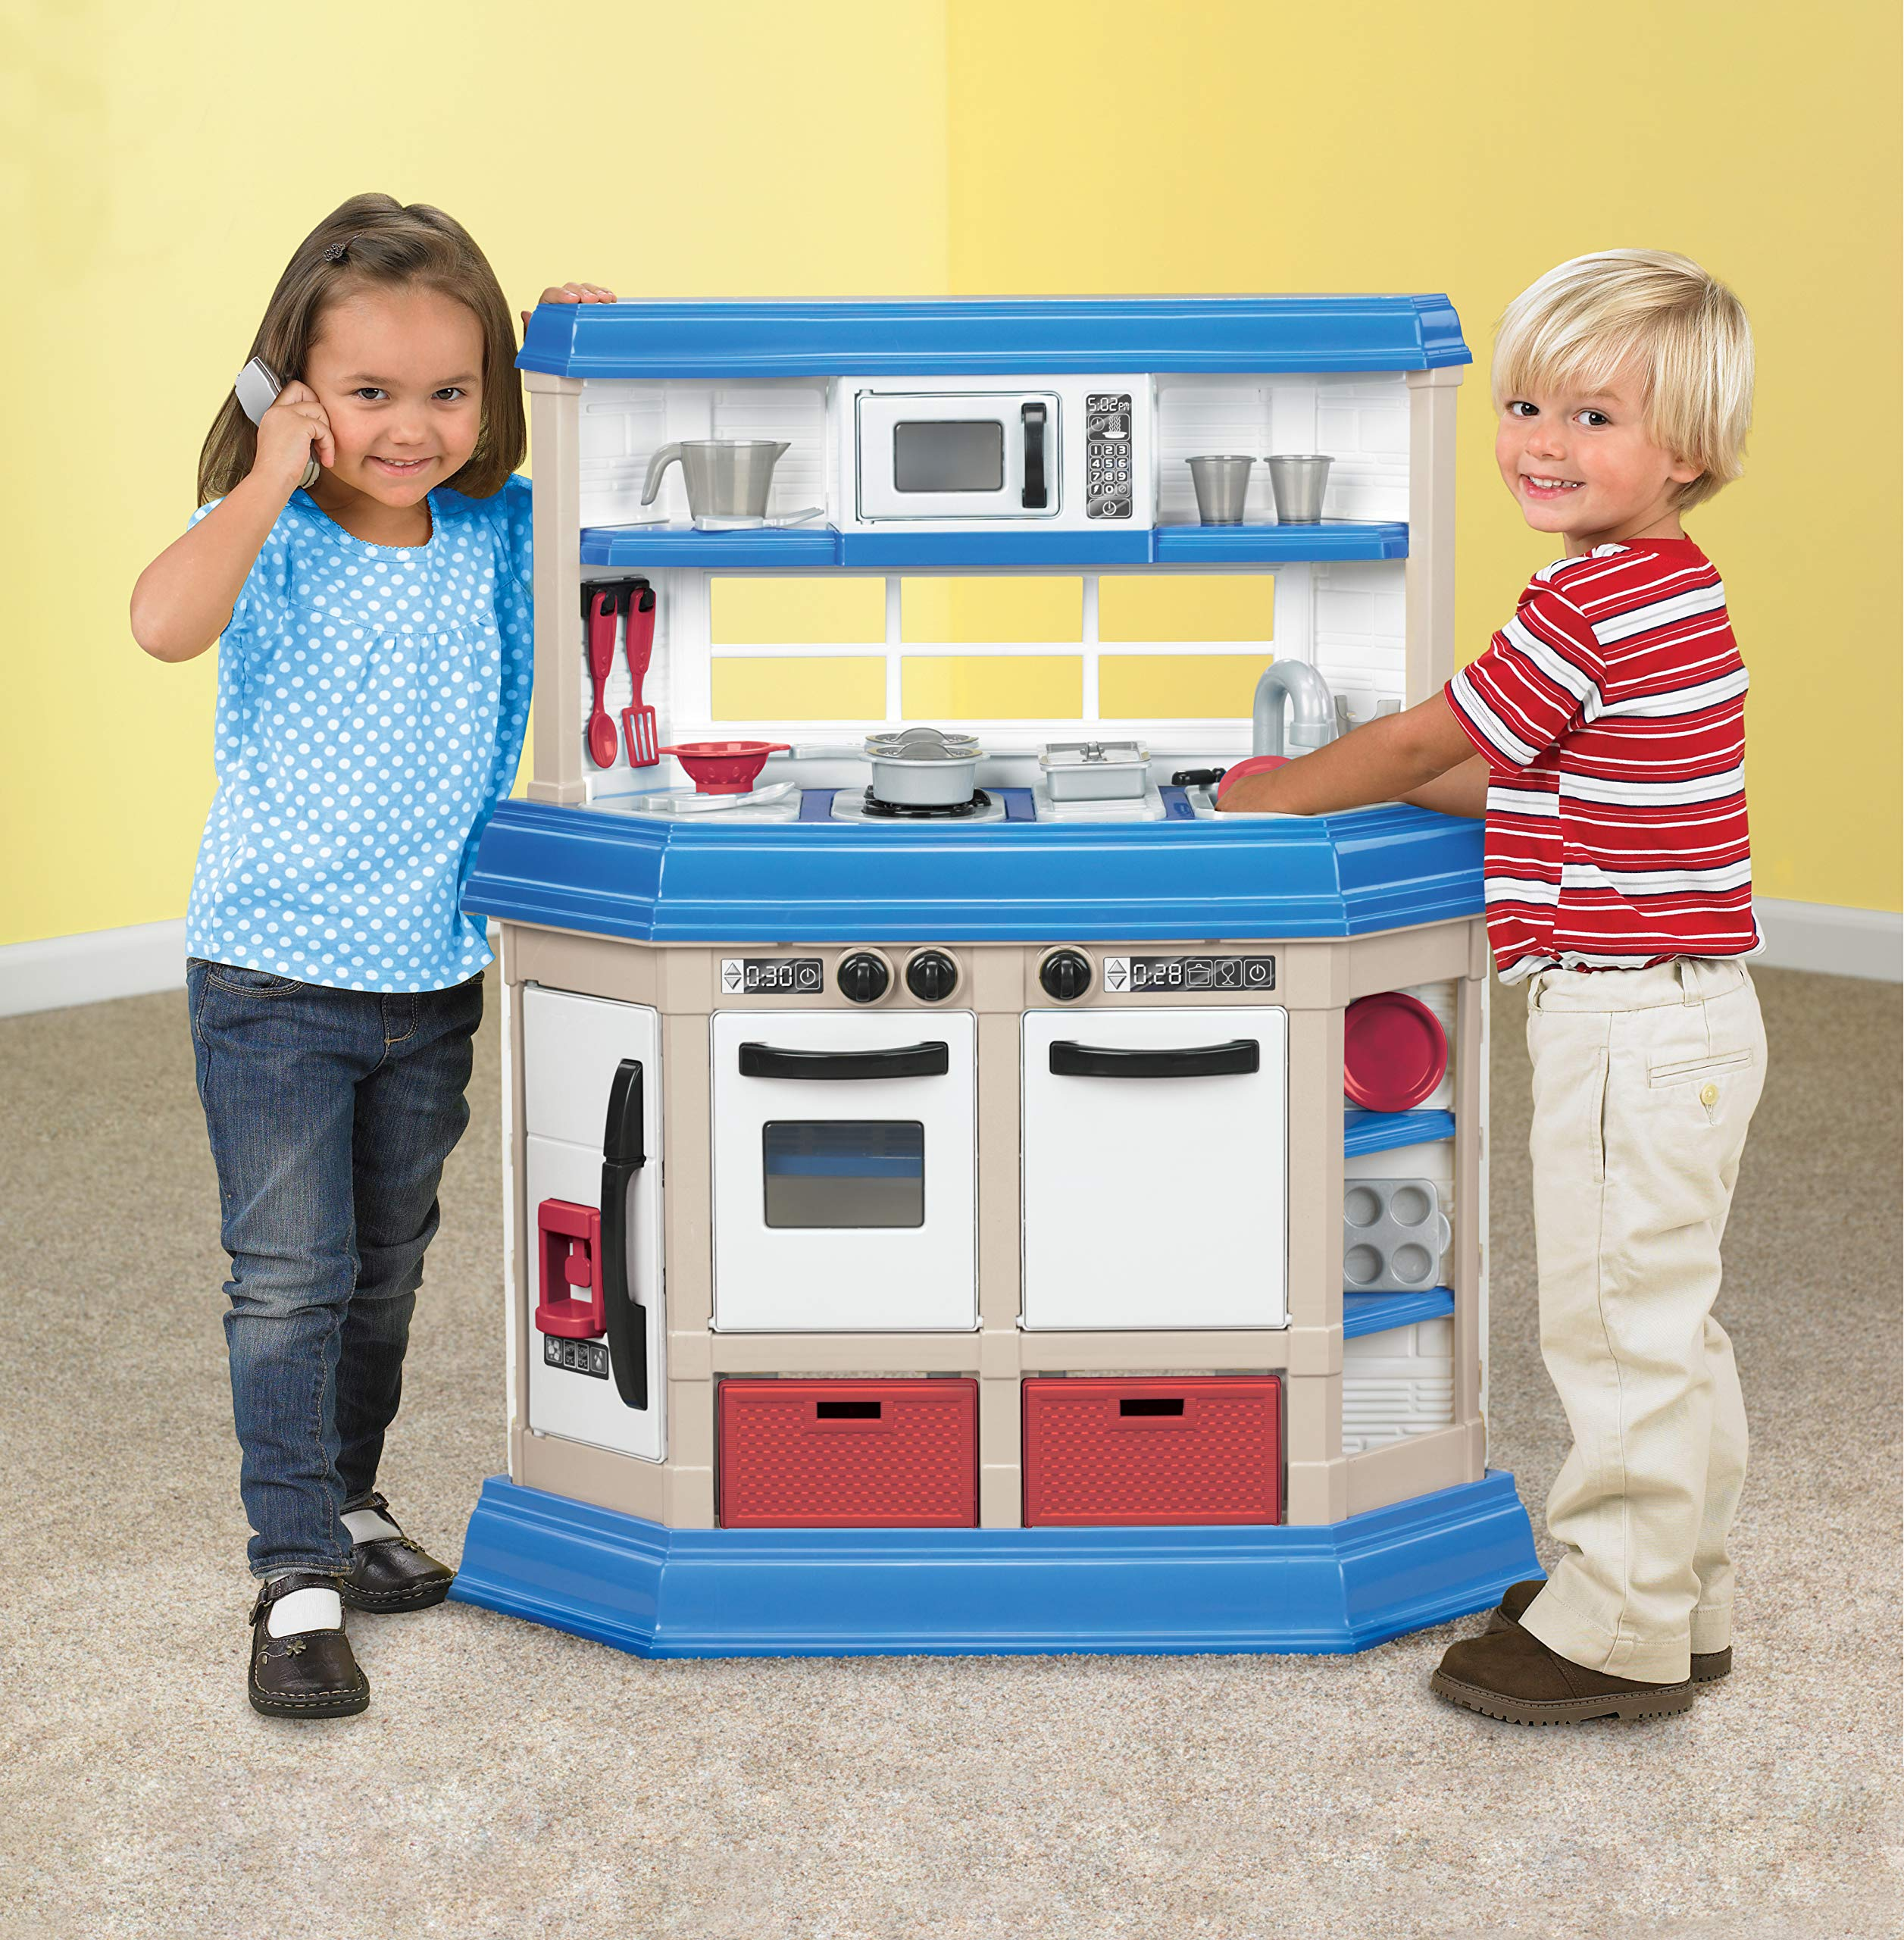 American Plastic Toys Cookin' Kitchen by American Plastic Toys (Image #2)